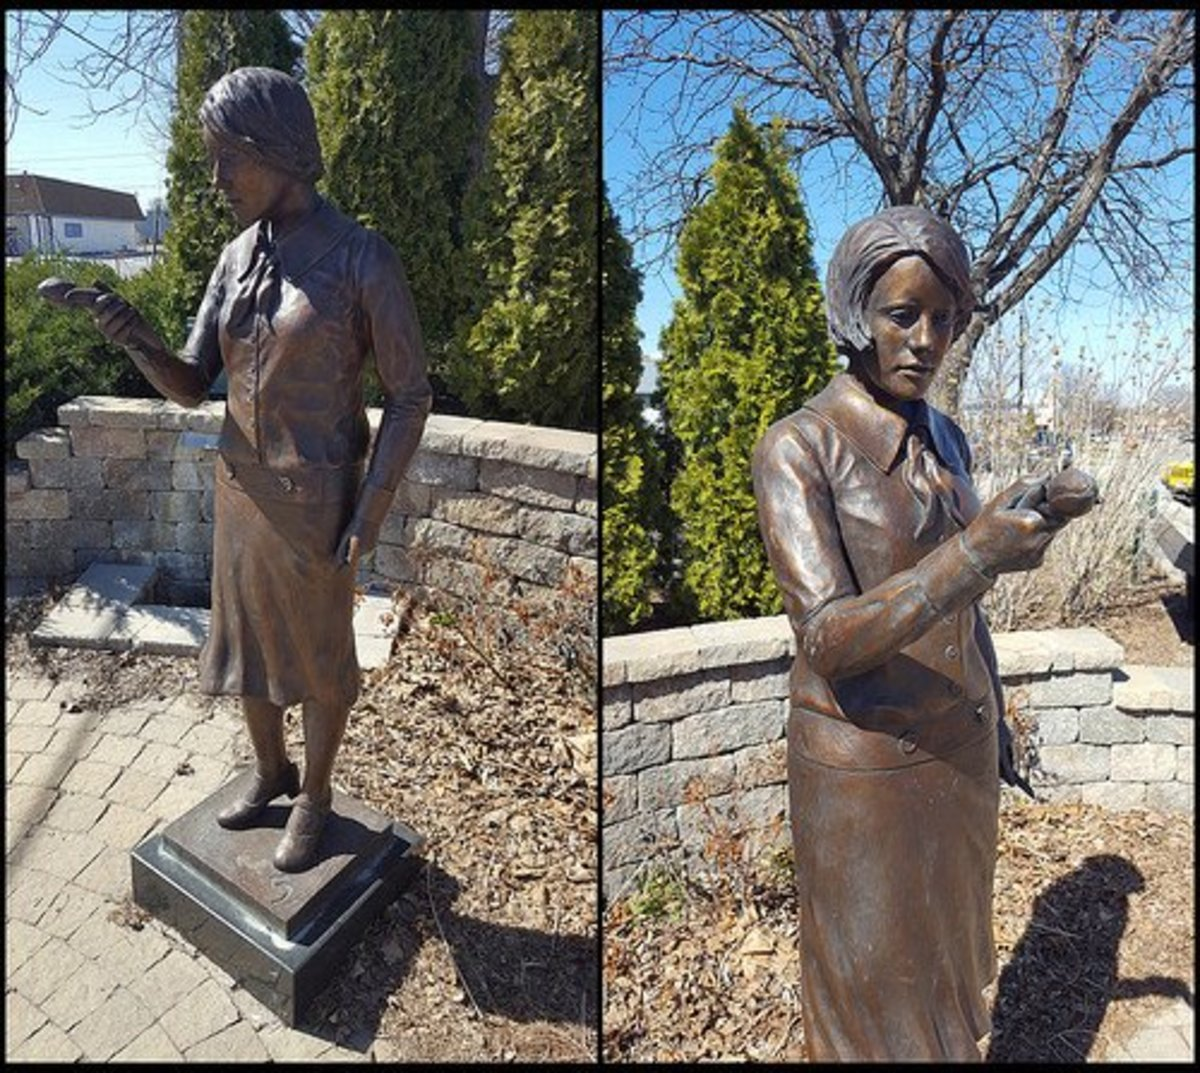 This statue was erected in Ottawa, Illinois in 2011 to honour the Radium Girls.